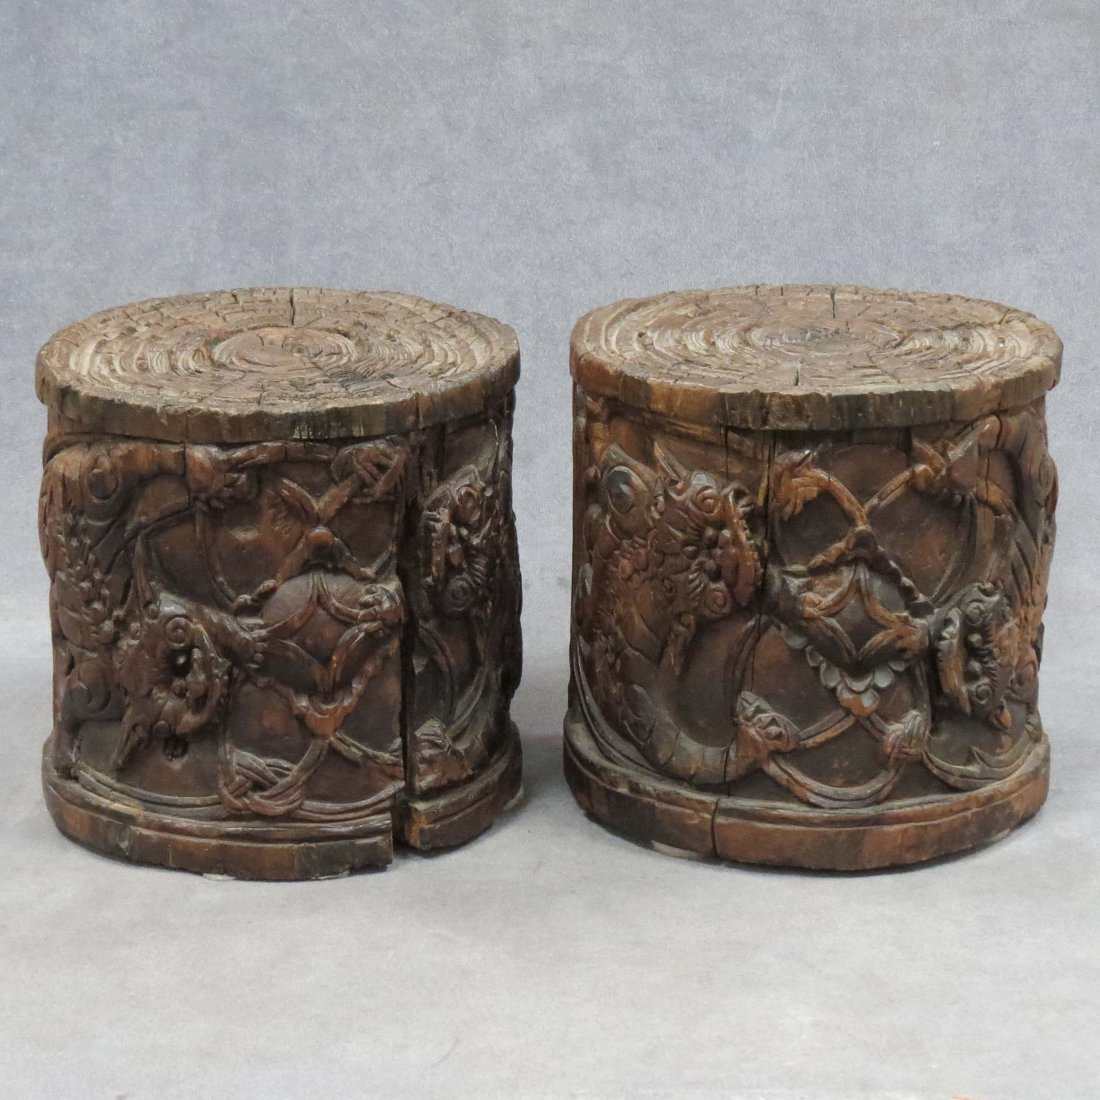 PAIR CHINESE CARVED WOOD PEDESTALS